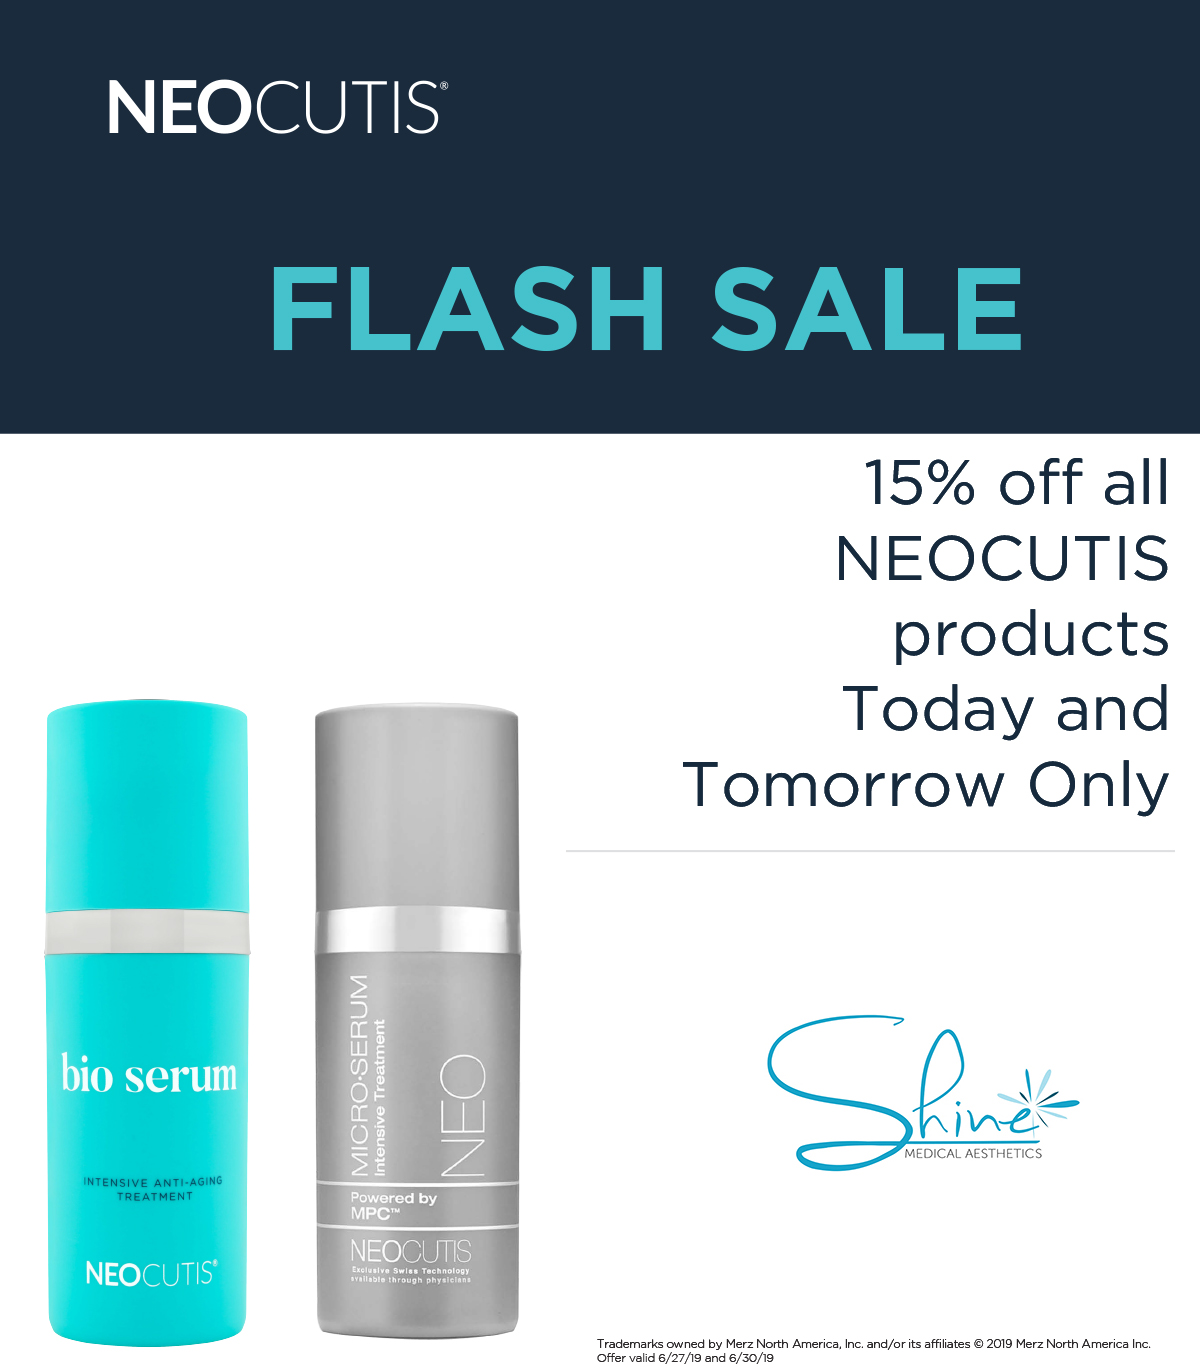 NEOCUTIS FLASH SALE